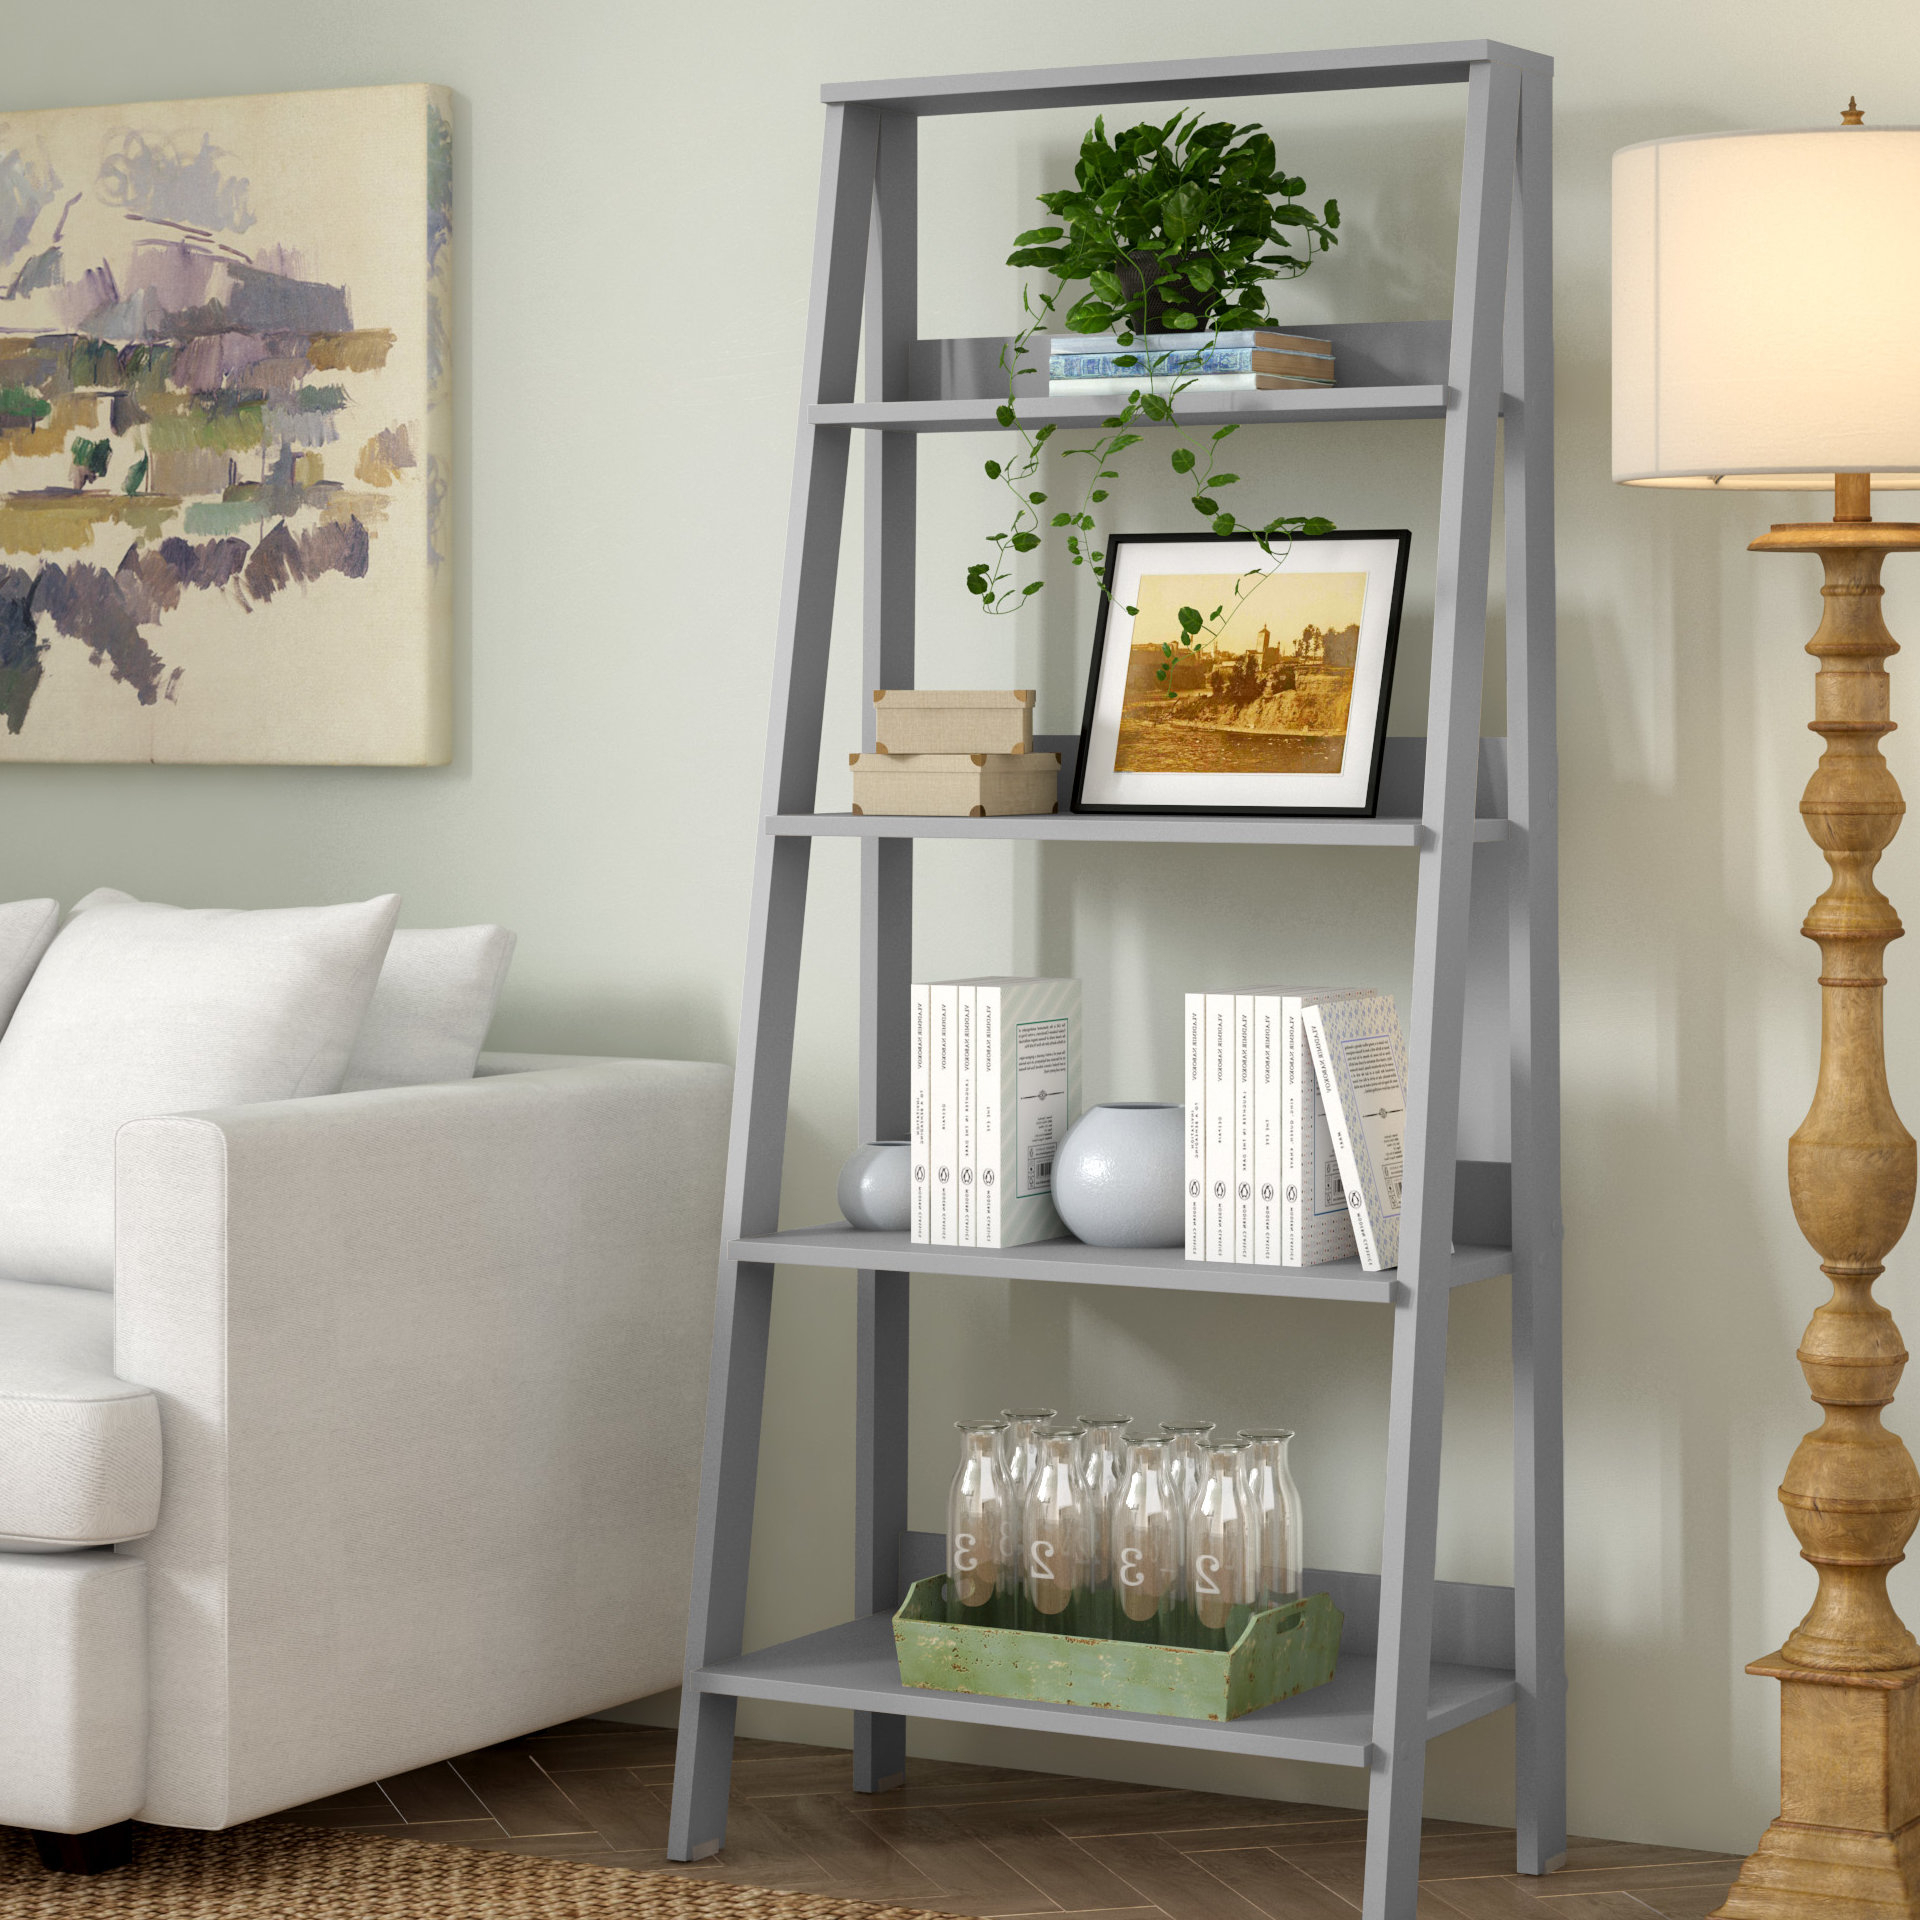 Farmhouse & Rustic Leaning Bookcases & Bookshelves (View 12 of 20)